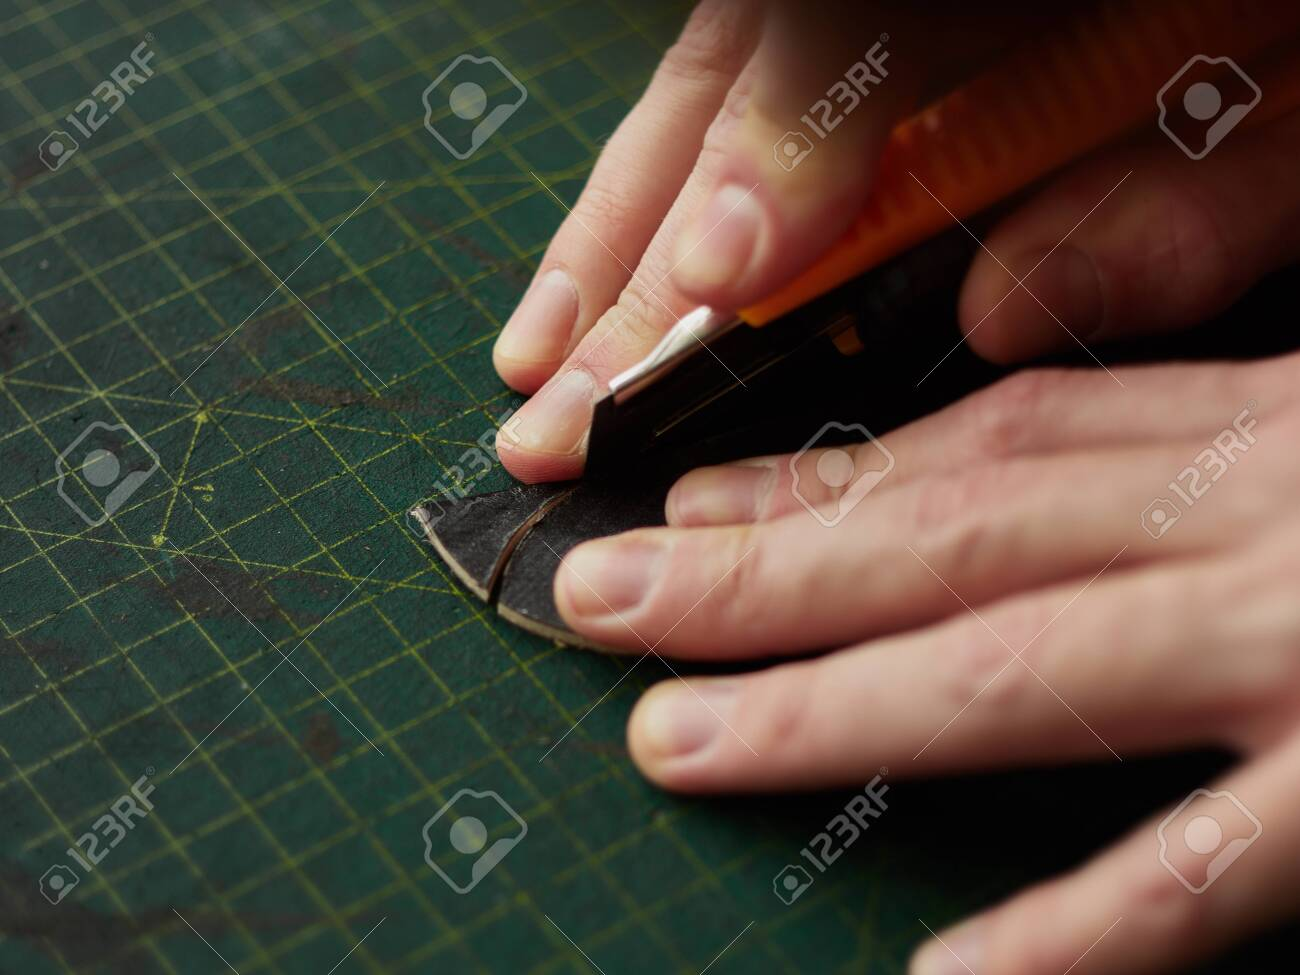 Shaping the tip of the leather strap with a knife. - 131722426